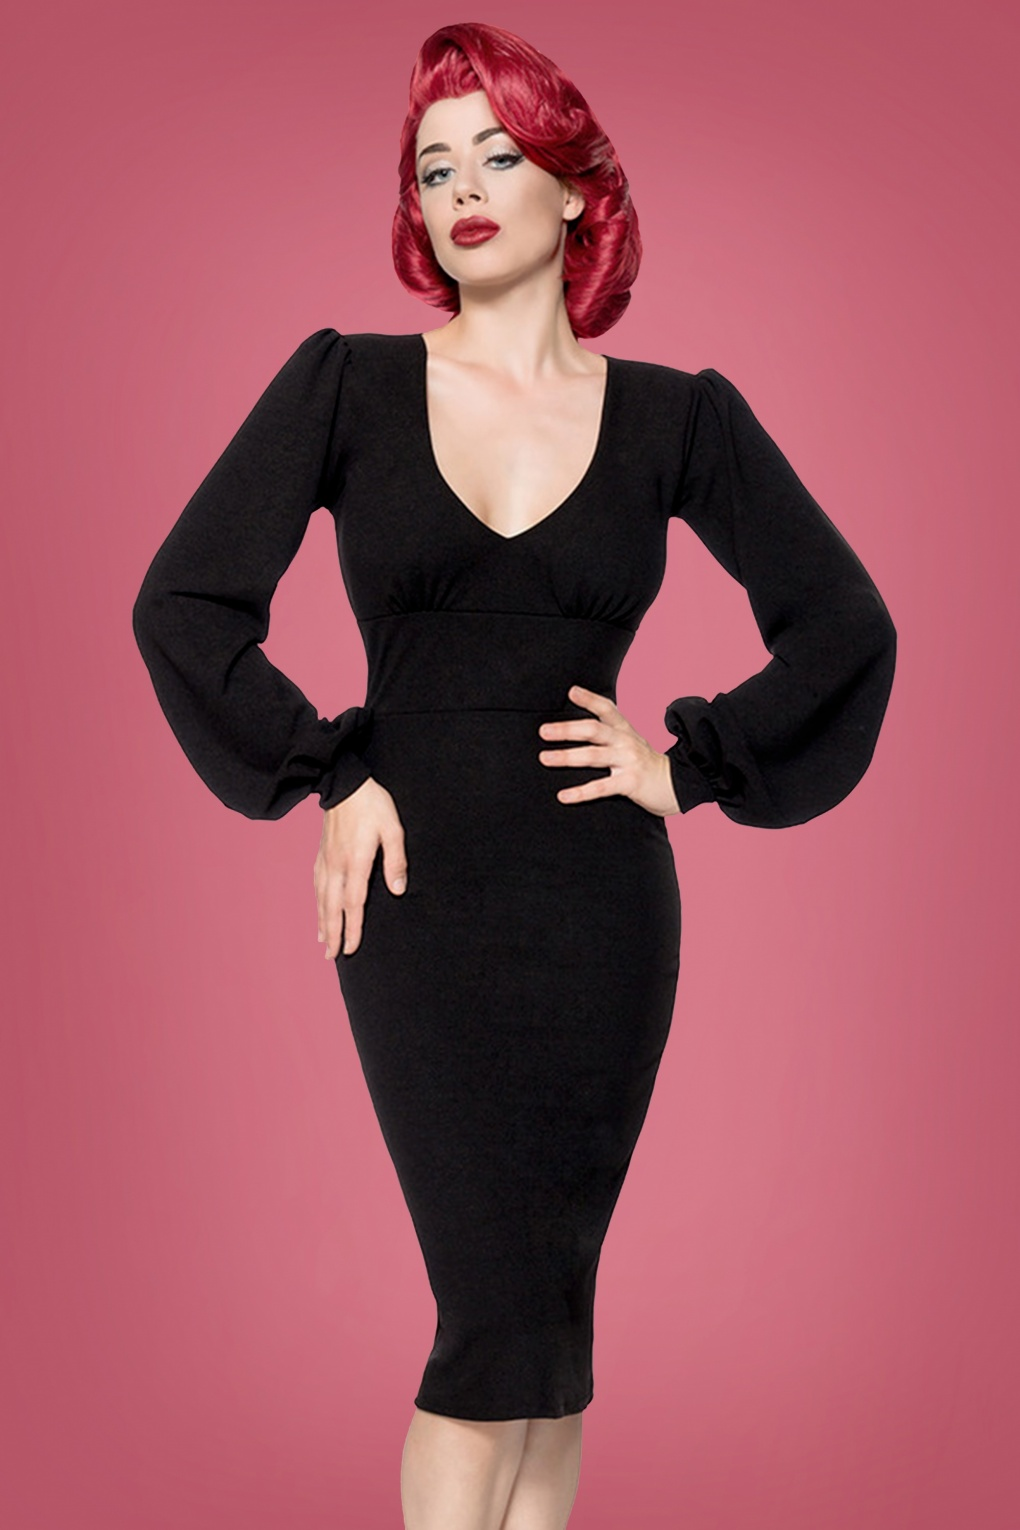 Rockabilly Dresses | Rockabilly Clothing | Viva Las Vegas 50s Bella Pencil Dress in Black £52.75 AT vintagedancer.com